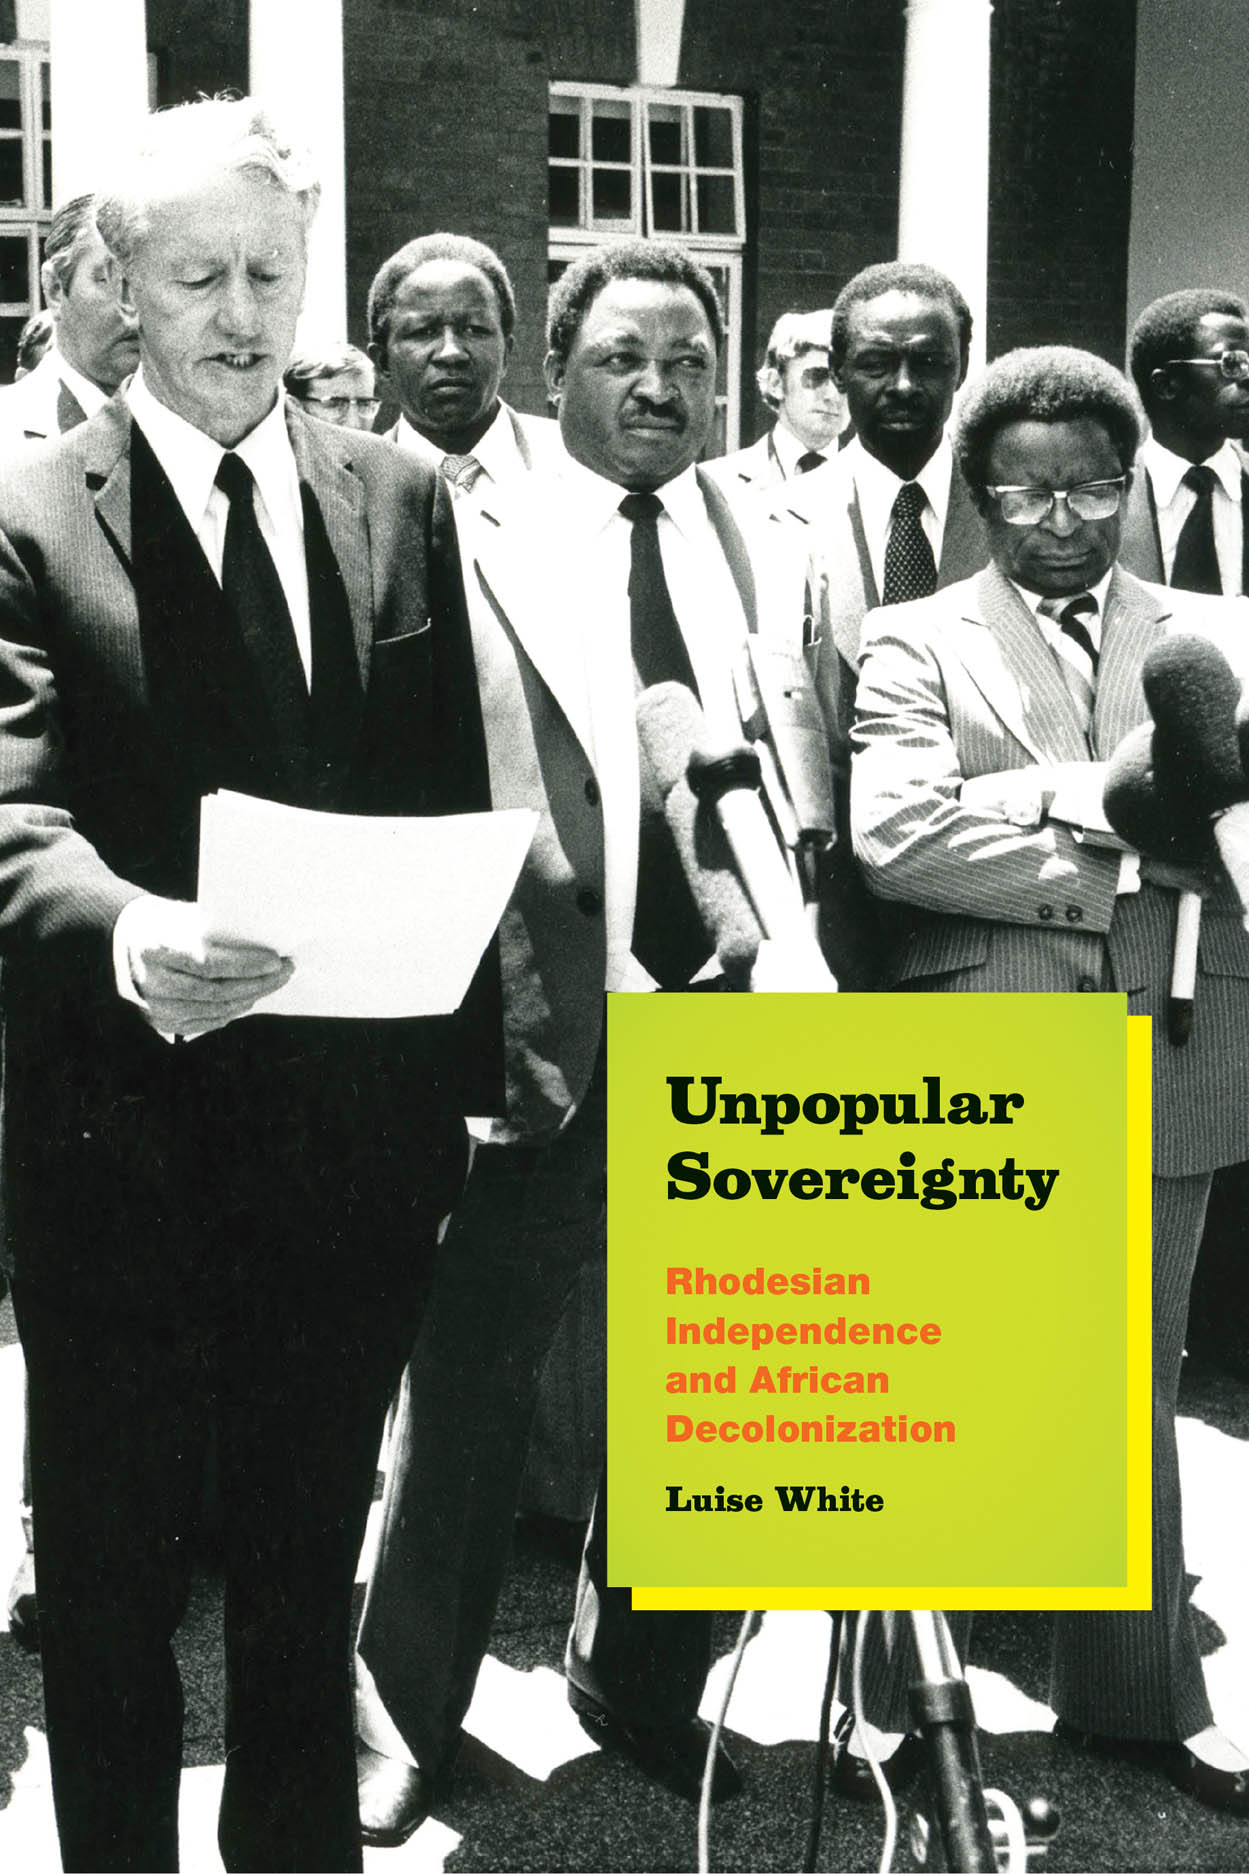 Unpopular Sovereignty: Rhodesian Independence and African Decolonization